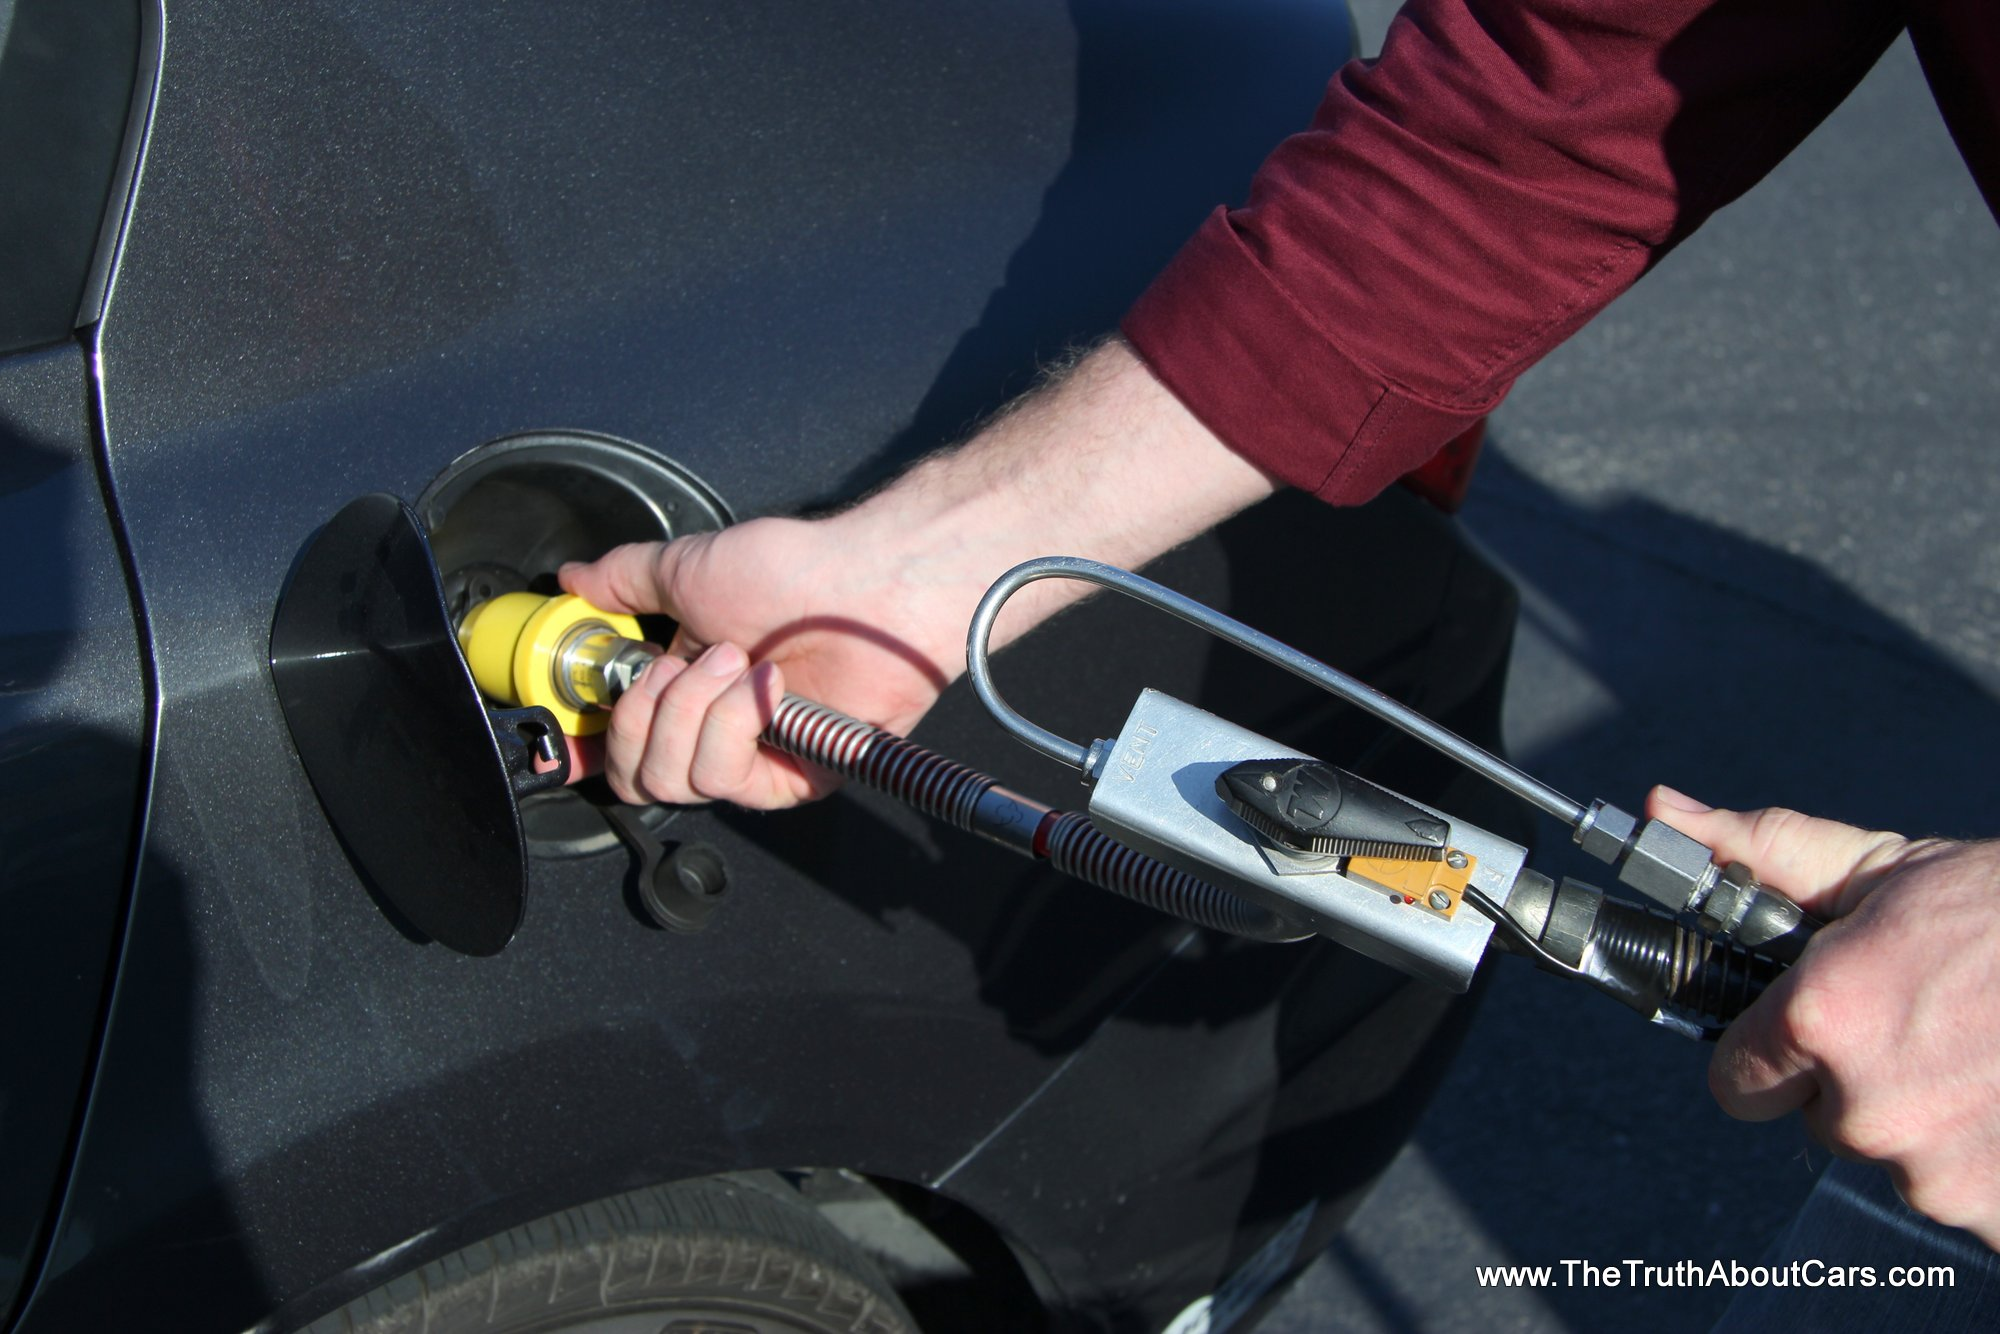 Eaton Ge Working On Affordable Cng Home Refueling